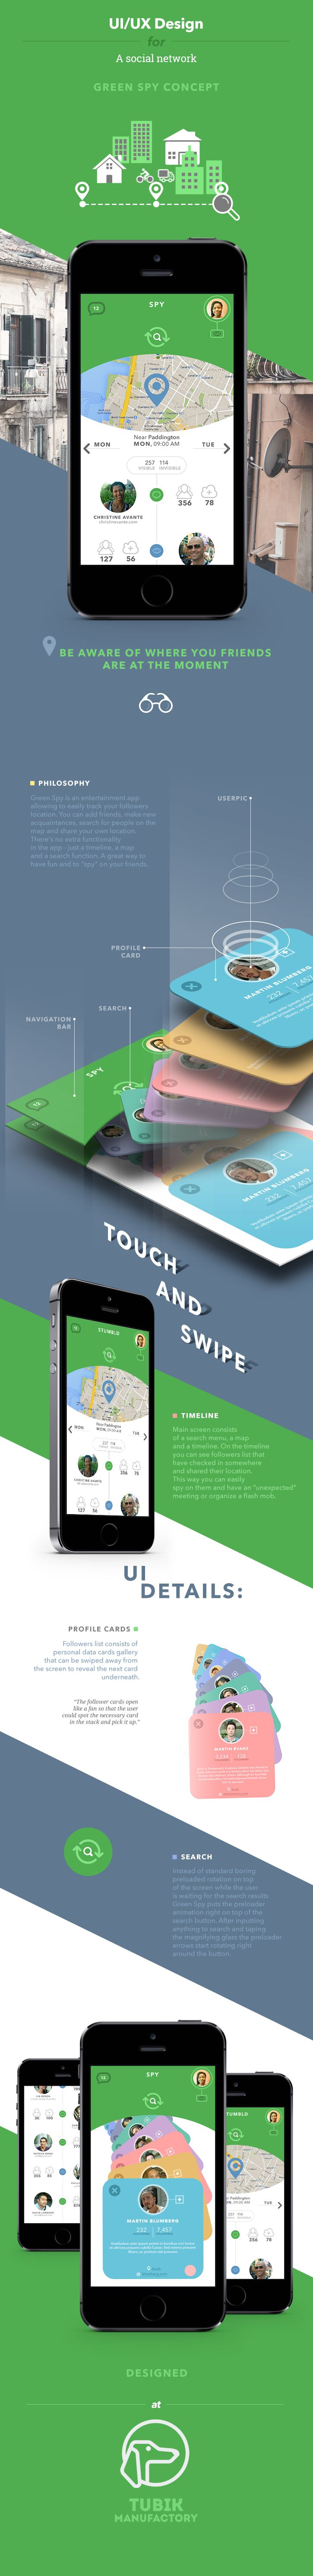 Unique App Design, Green Spy #App #Design (http://www.pinterest.com/aldenchong/)